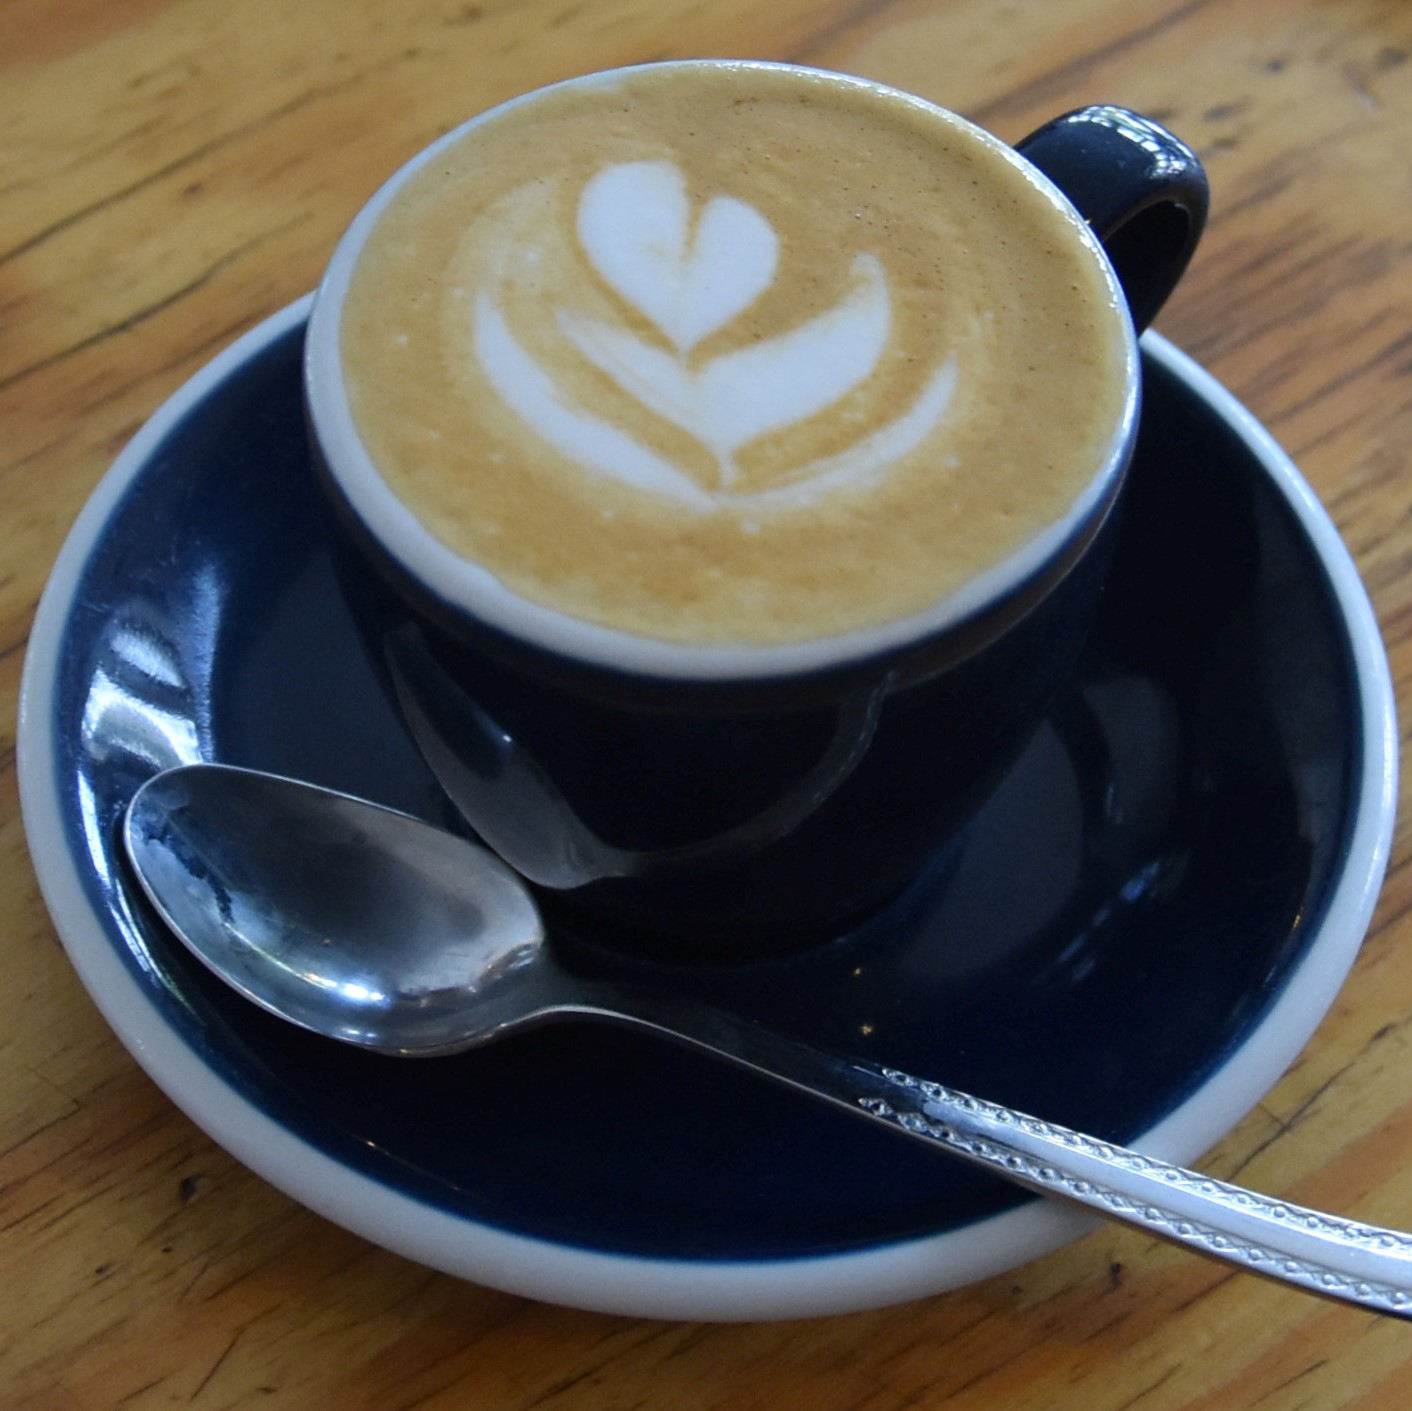 A piccolo, made with the house blend at Caffènation in Amsterdam, and served in an espresso cup.